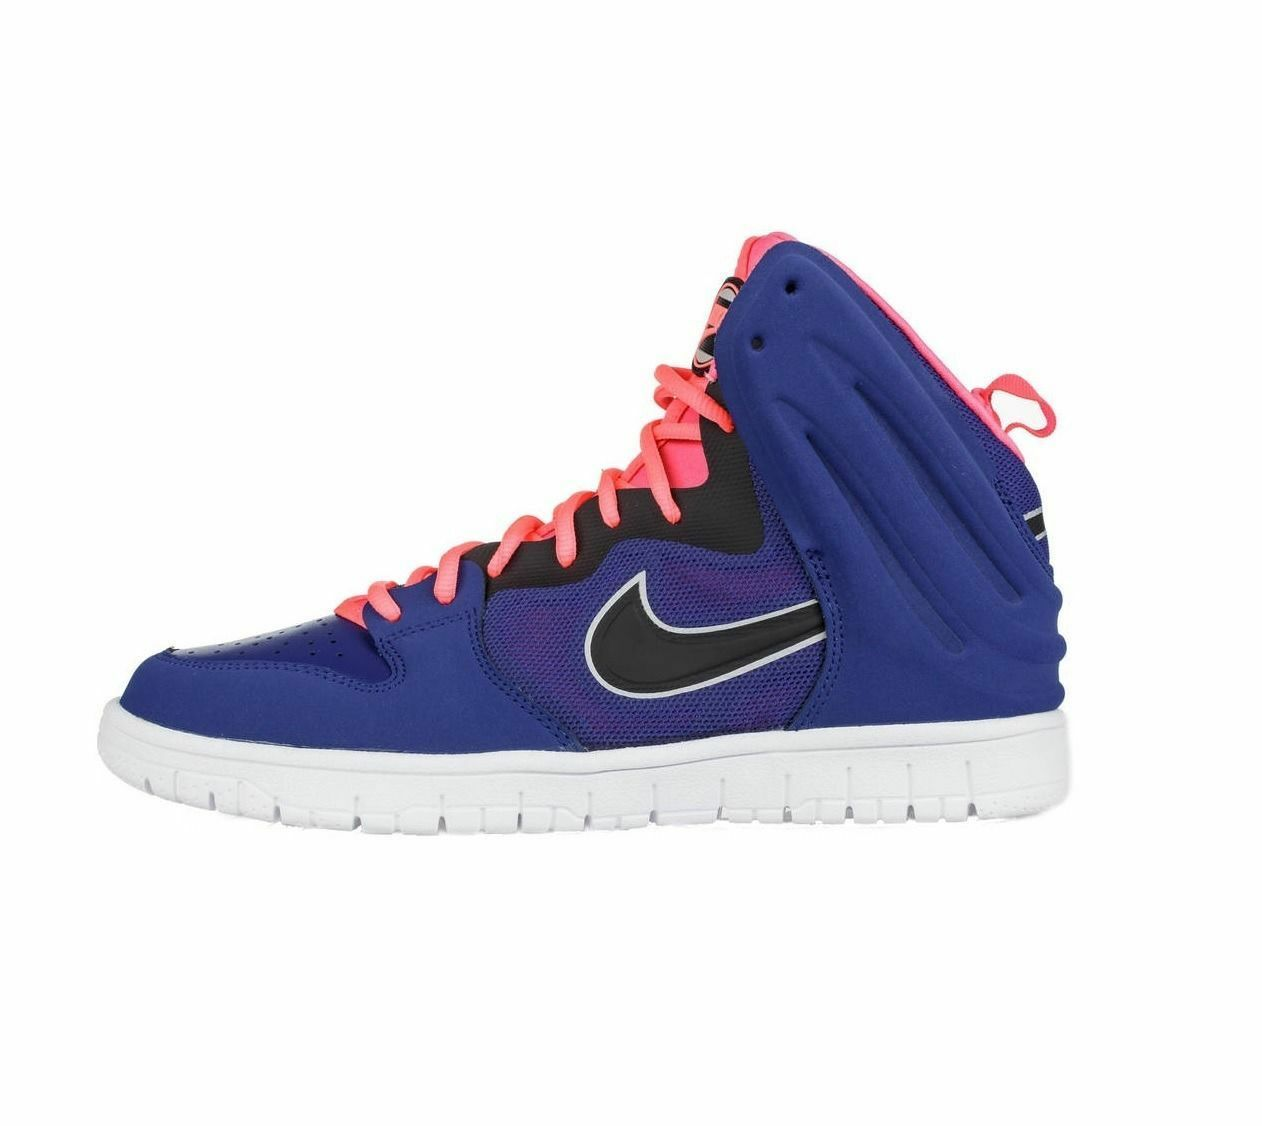 Nike Dunk Free MENS 9.5 Royal Blue Hi Top NEW